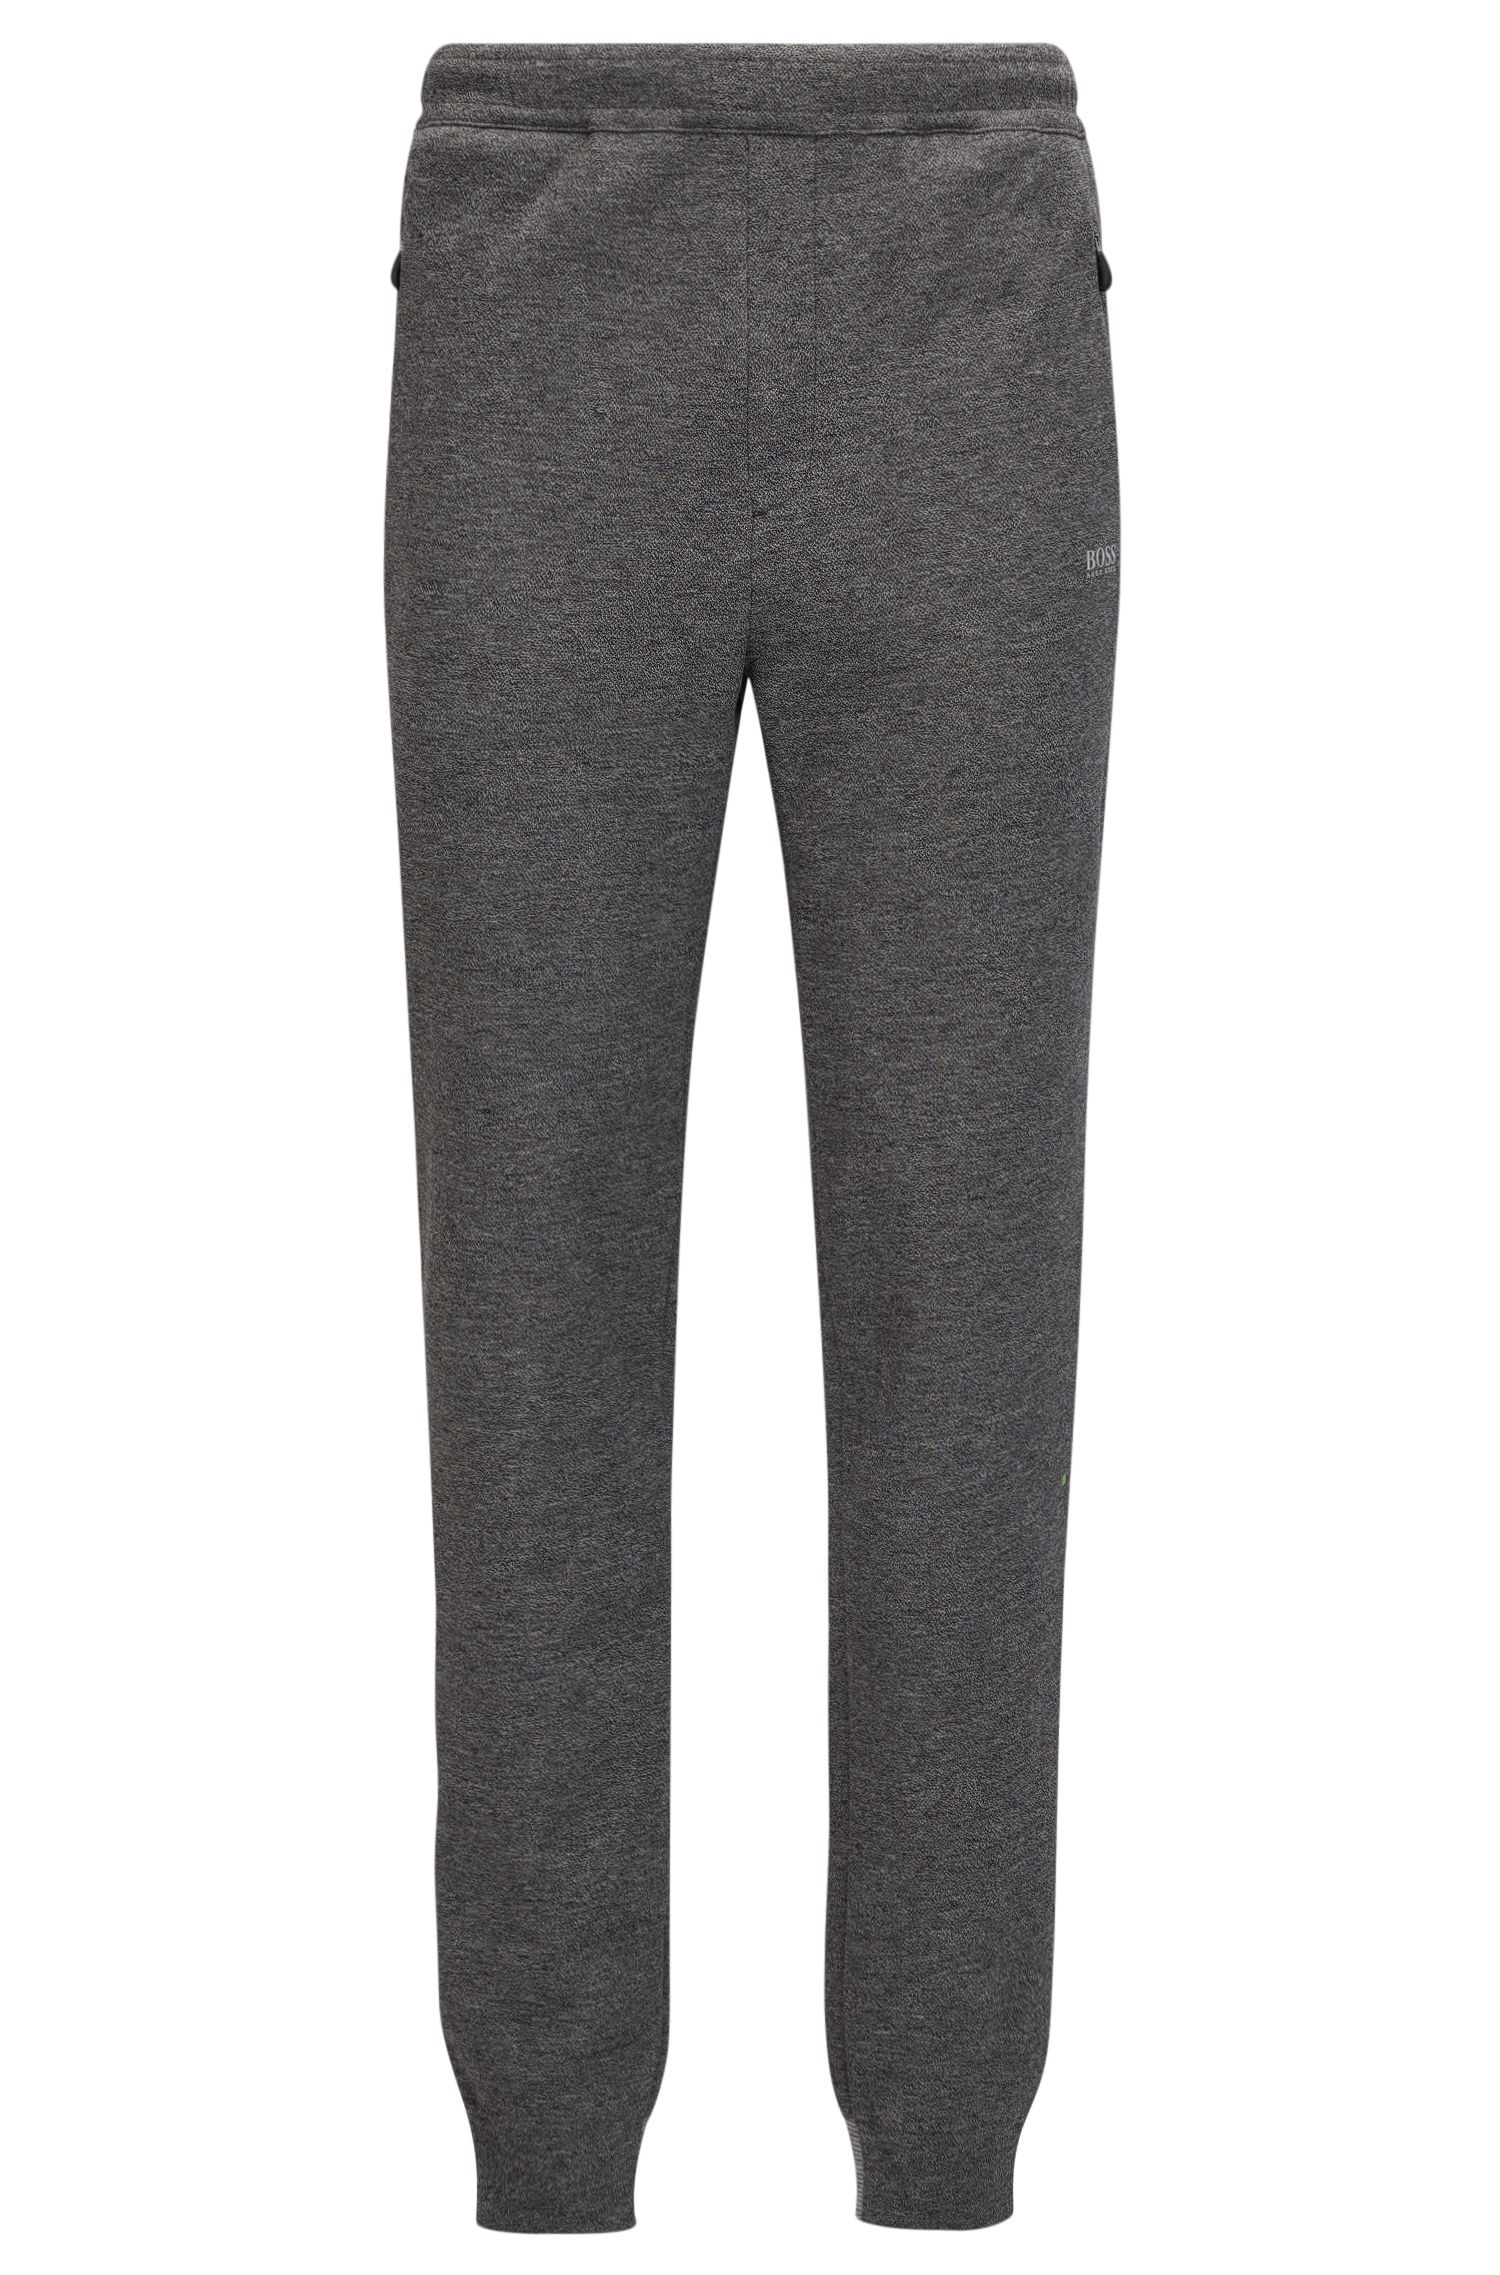 Cotton-blend jogging bottoms in a regular fit